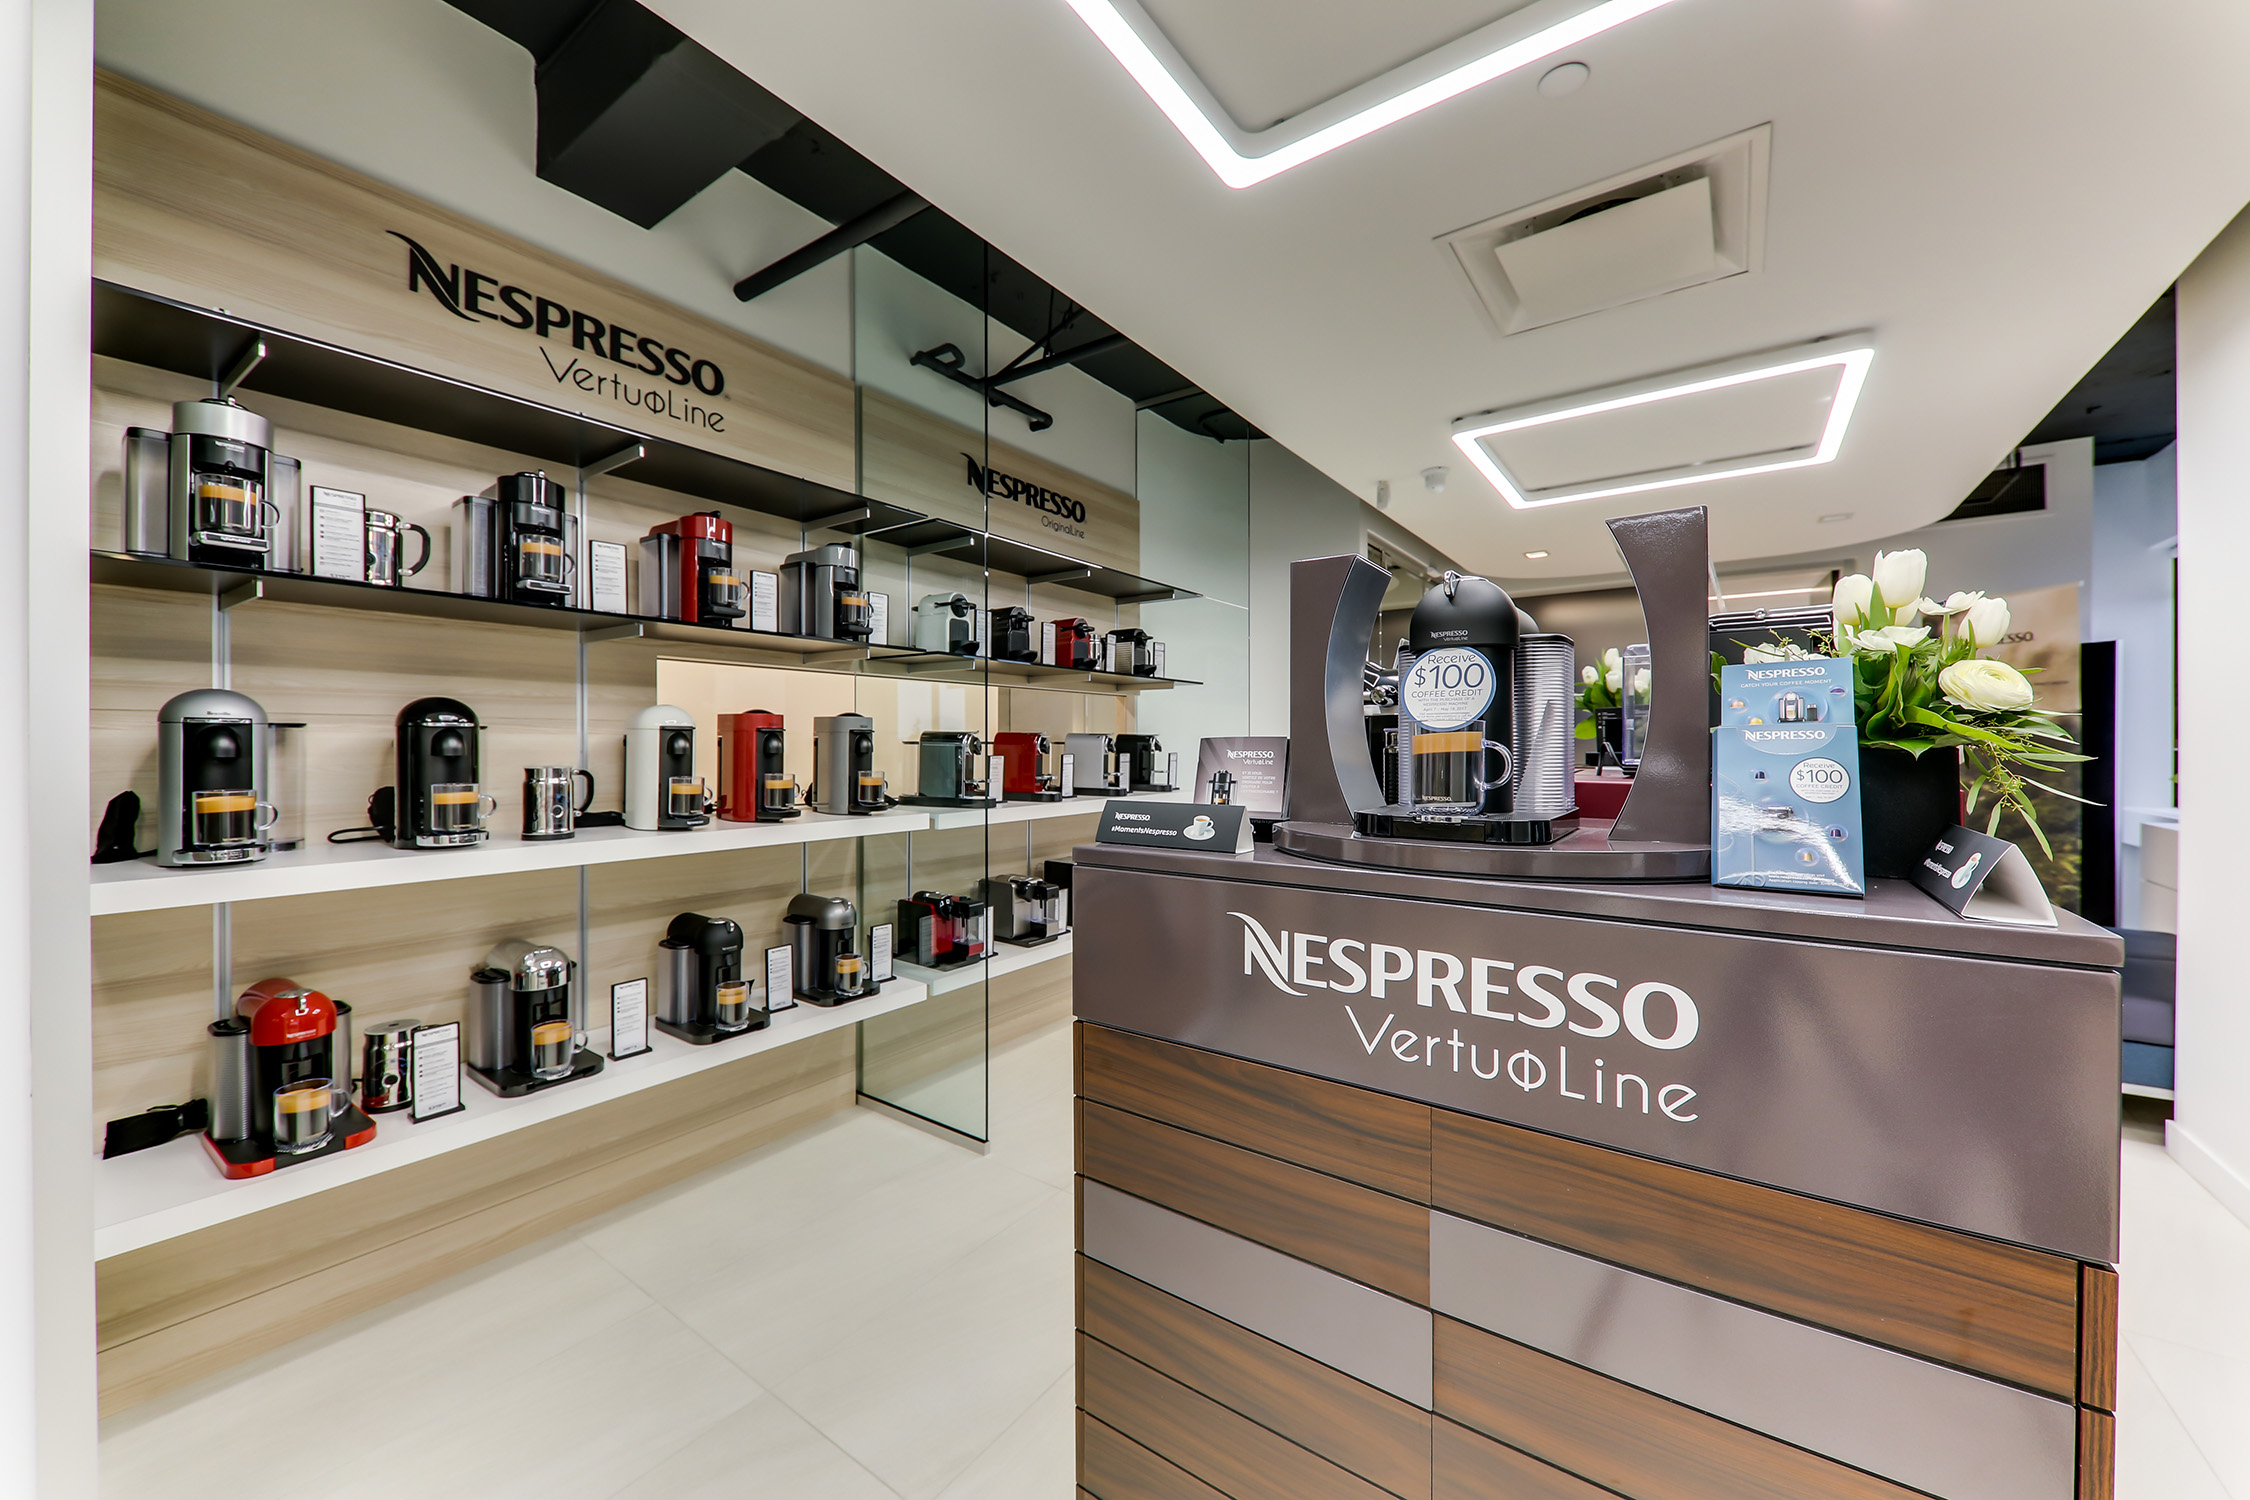 My nespresso academy experience girls of t o - Nespresso head office montreal ...